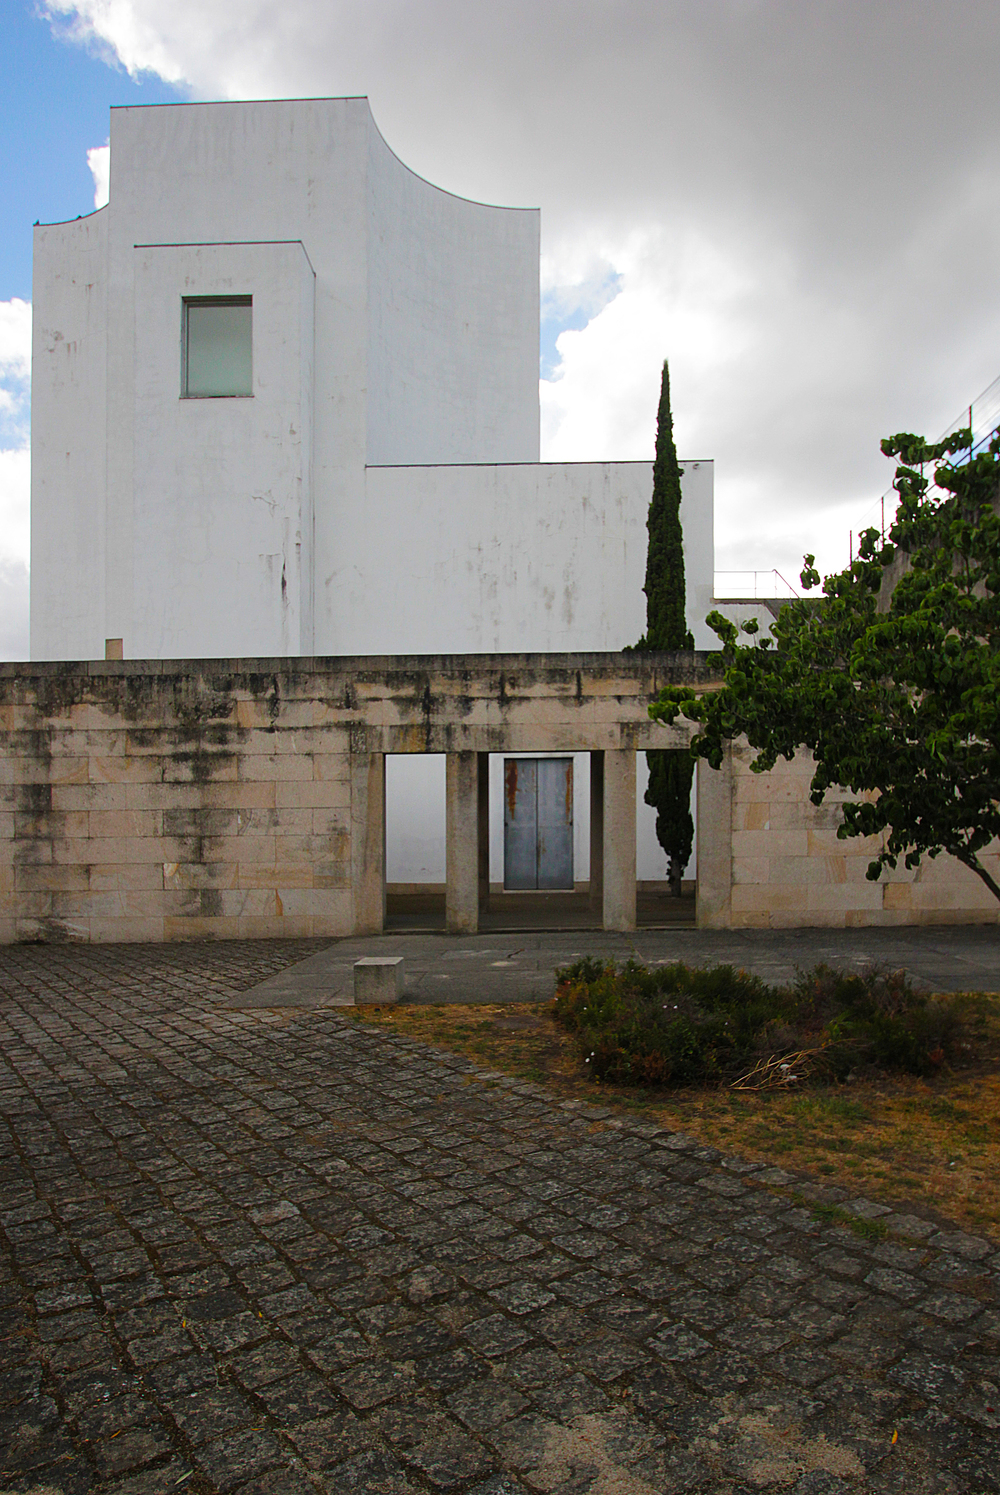 The architecture of Alvaro Siza